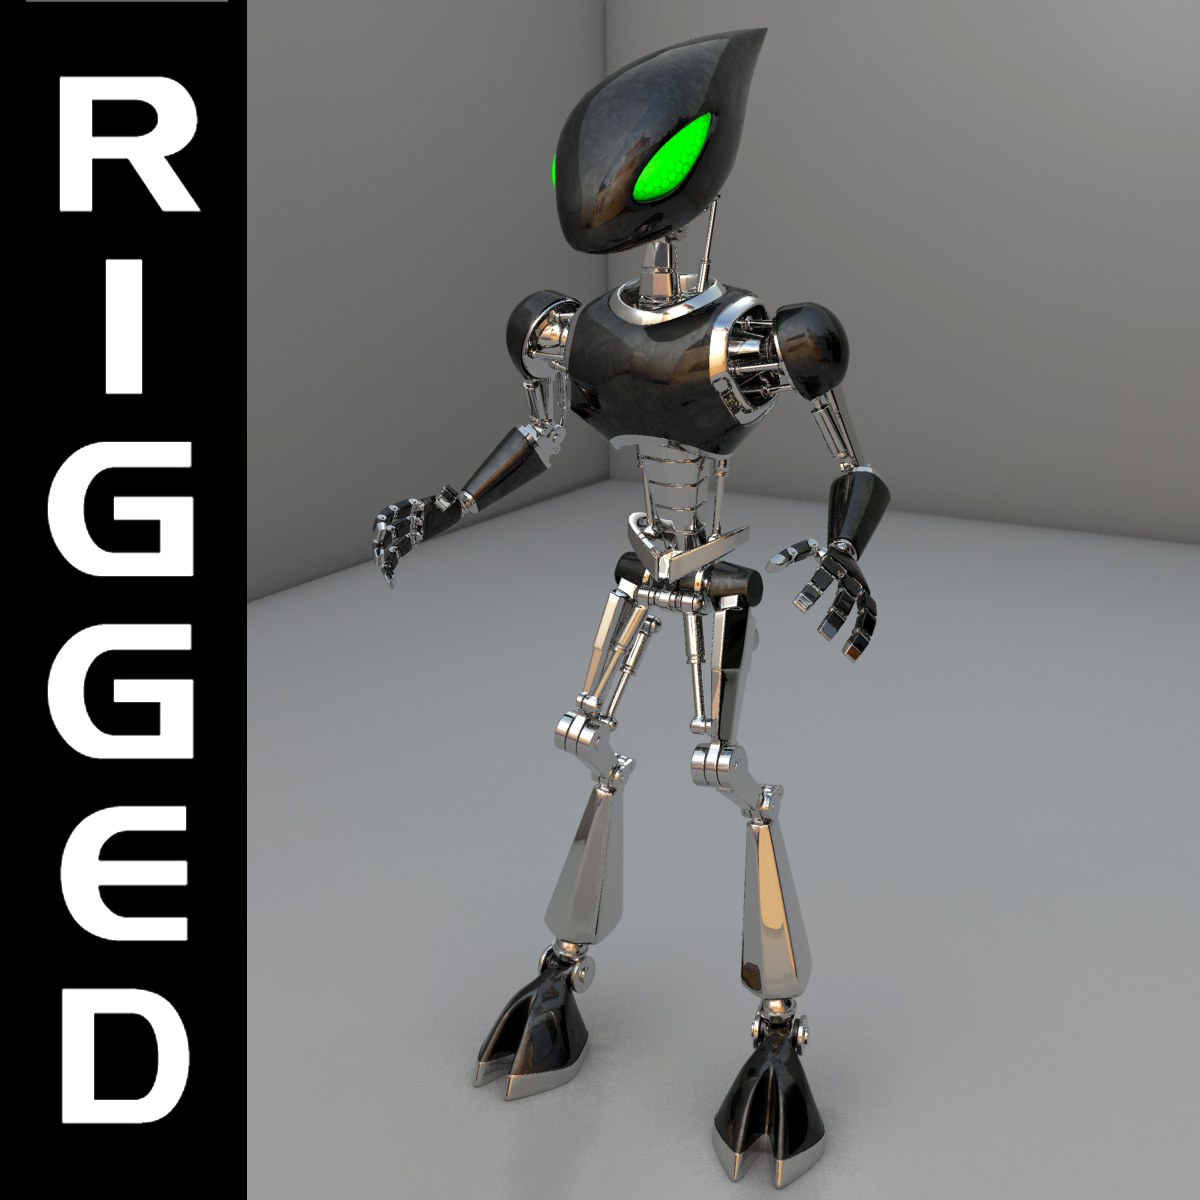 cpkb robot rigged 3d model 3ds max fbx blend obj 119272